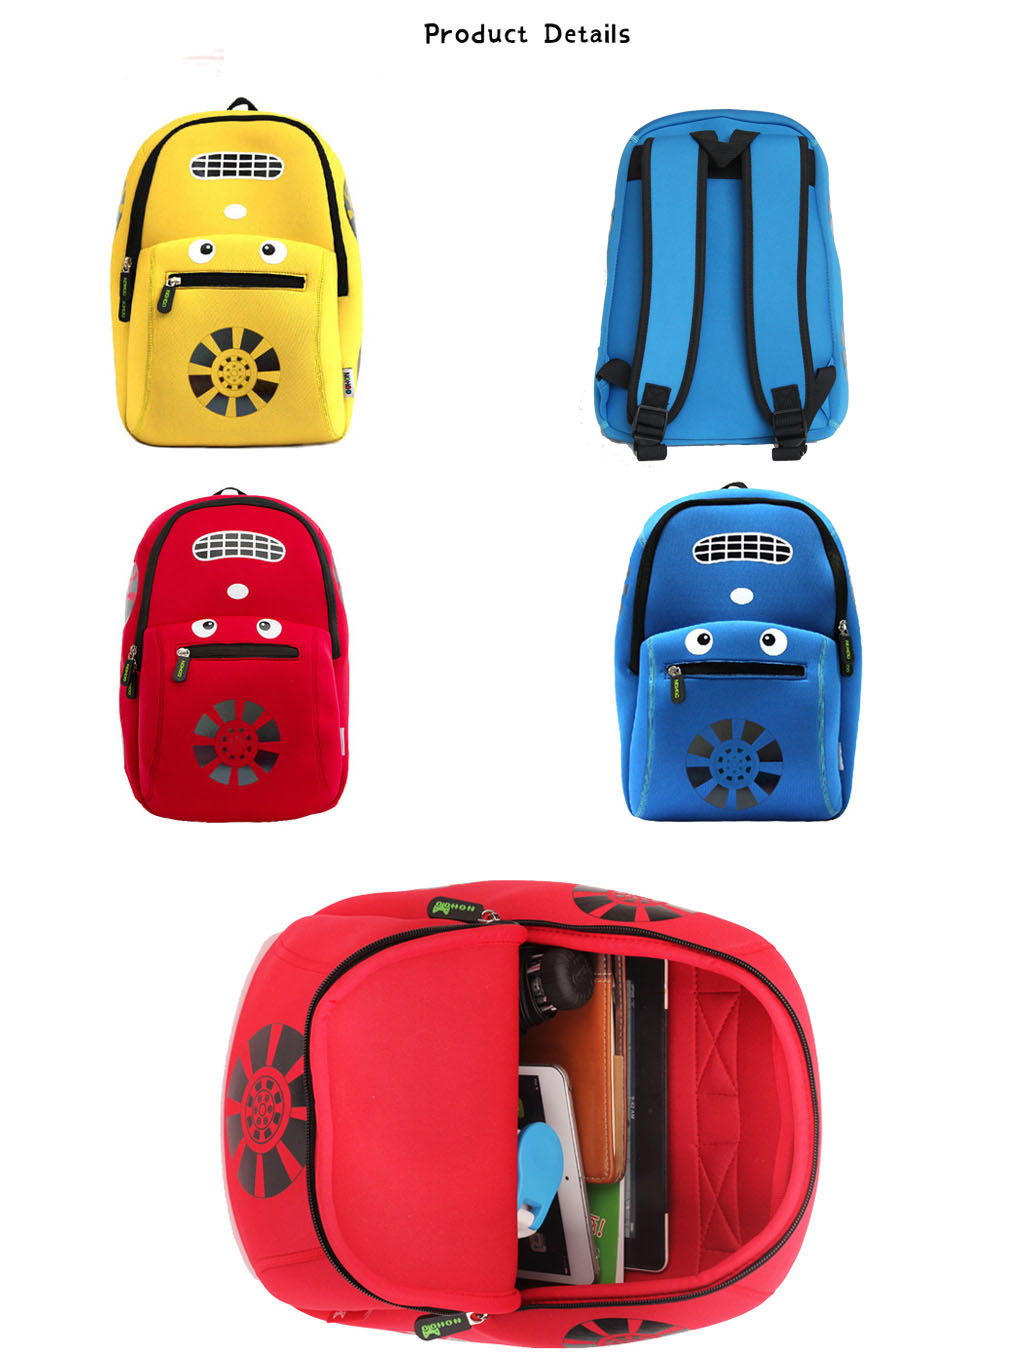 Nohoo Children Products-Nh003 Car Style Children School Bag Fashion Neoprene Backpack For Boys